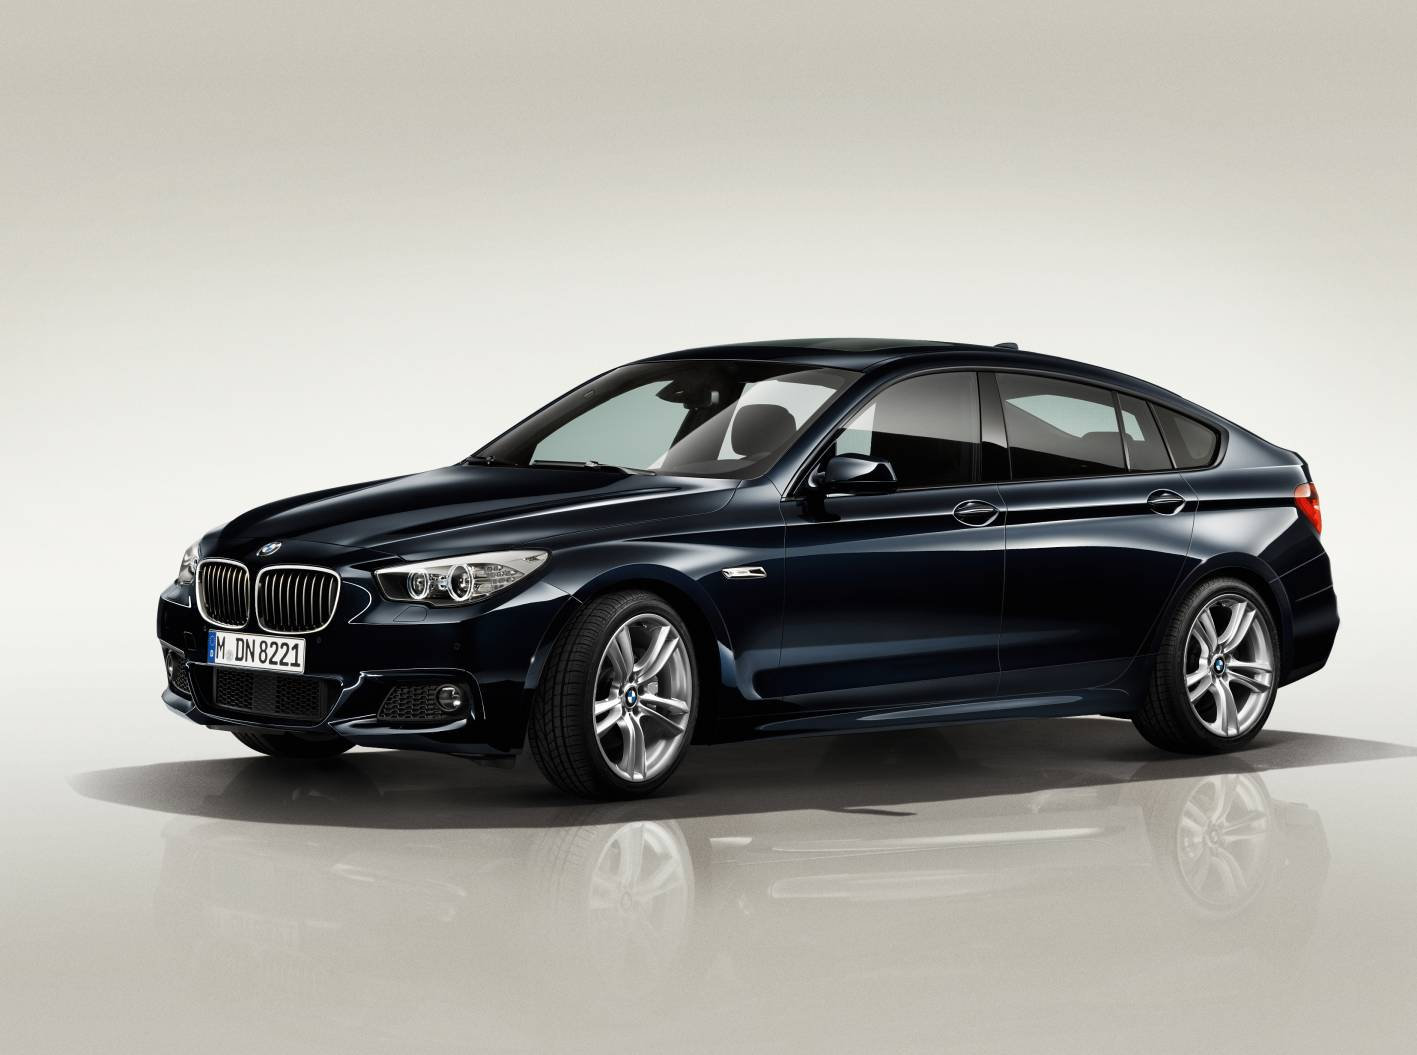 news bmw updates 5 series gt new 520d entry model. Black Bedroom Furniture Sets. Home Design Ideas